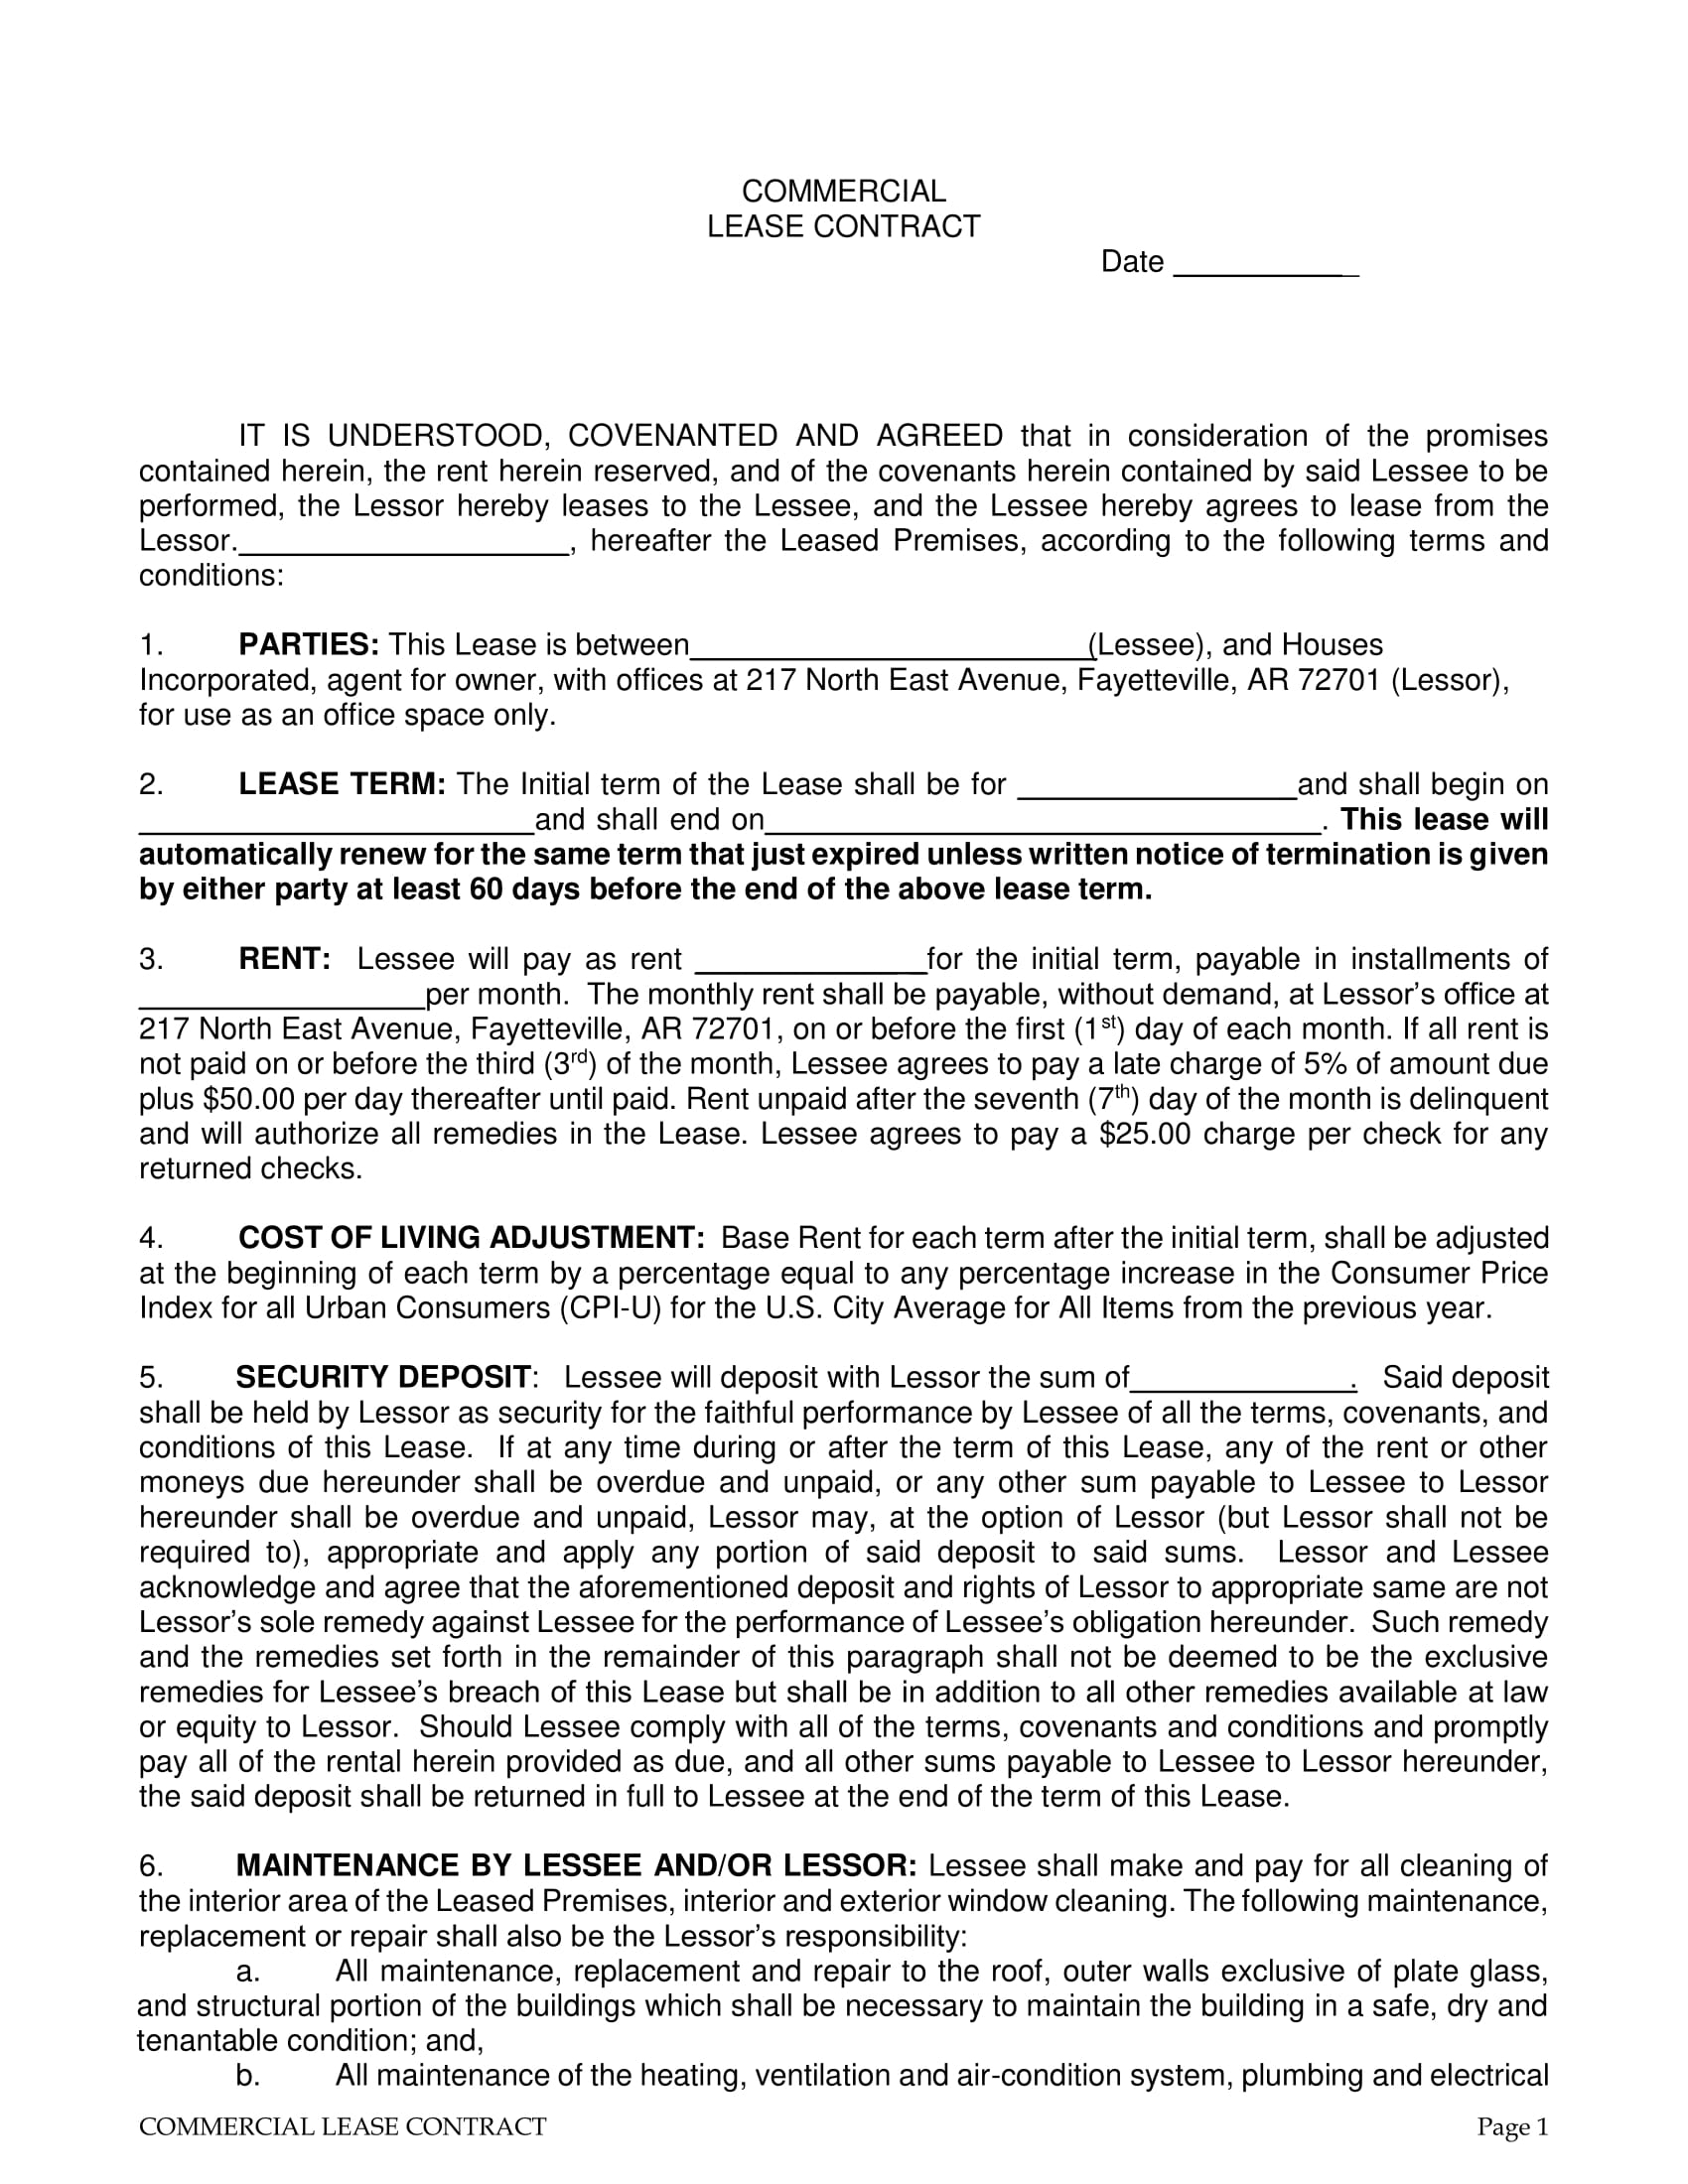 commercial lease contract form 1